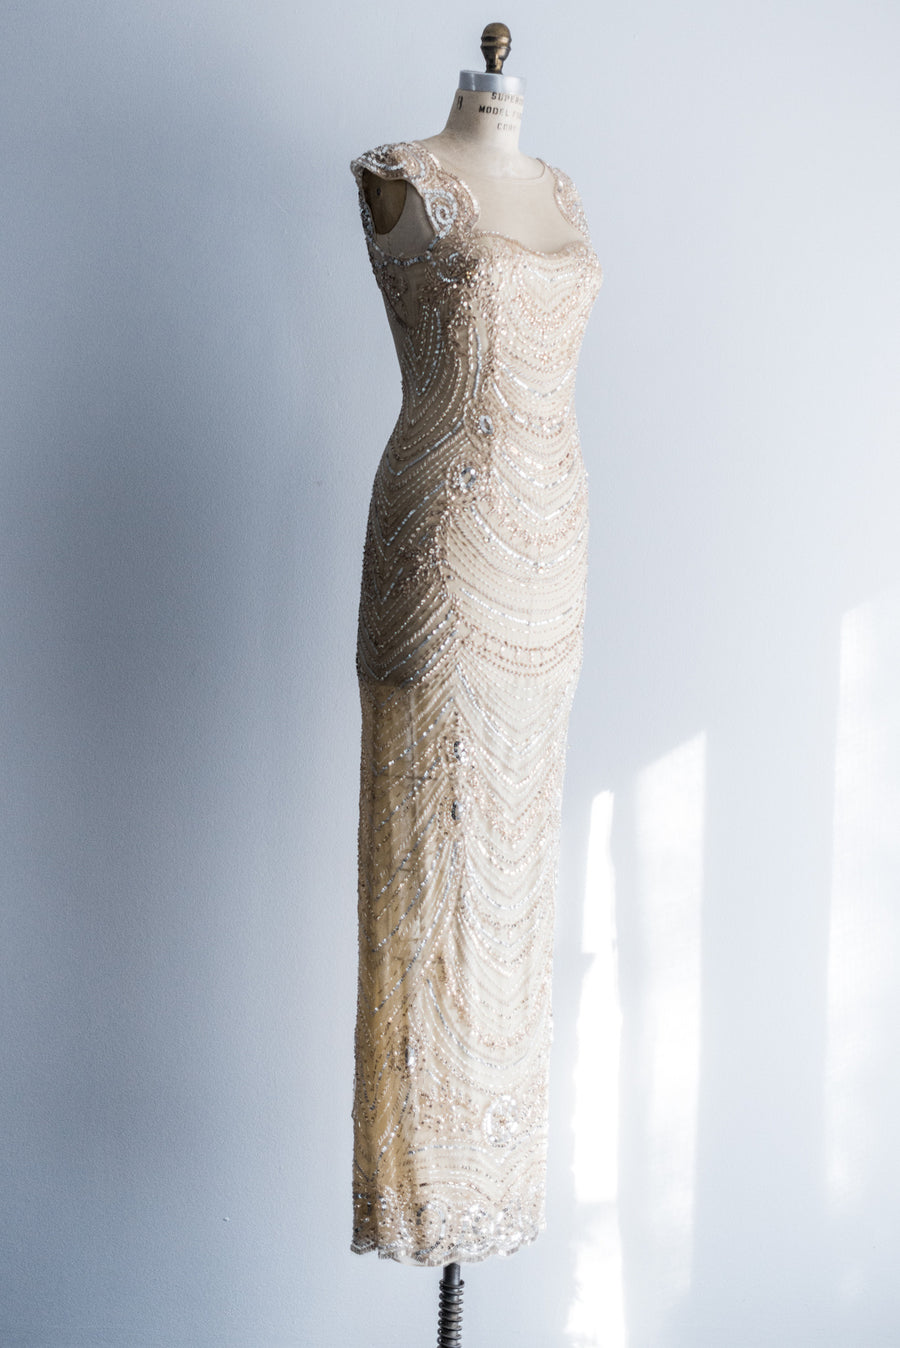 Cream, Nude and Gold Beaded Gown - S/4-6